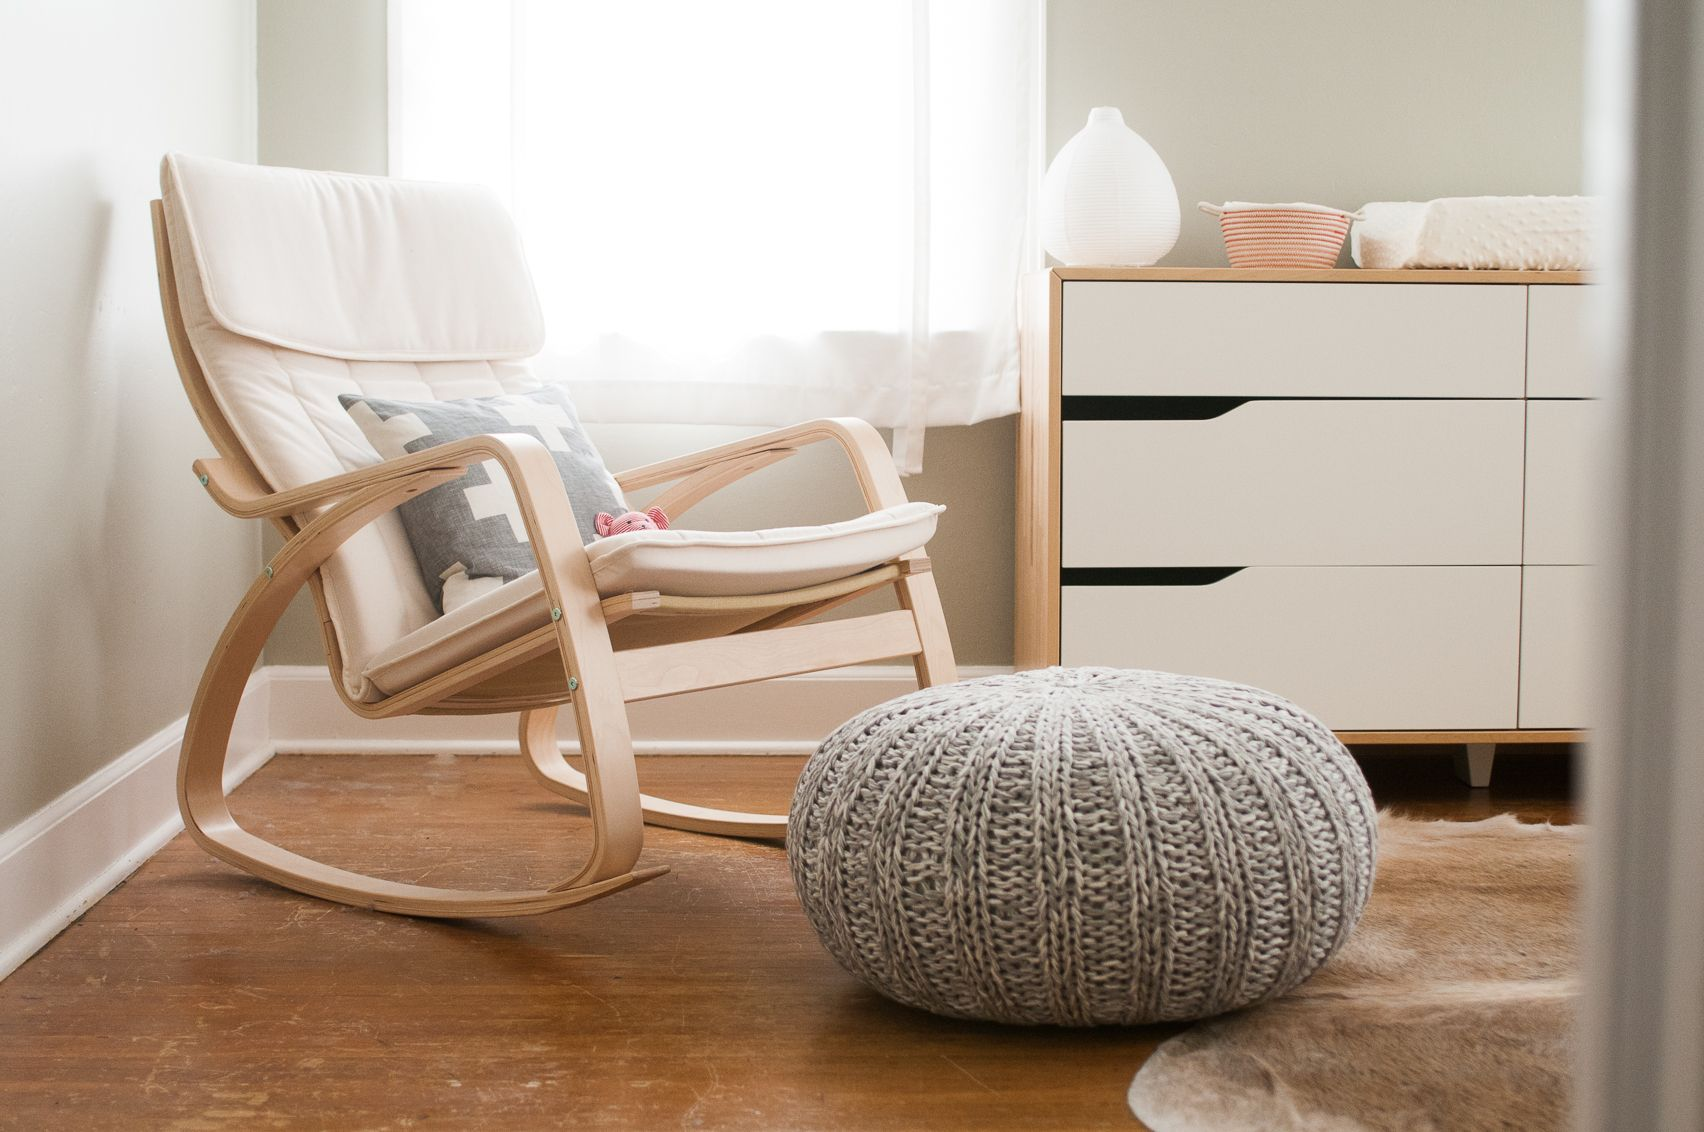 Ikea Poang Rocking Chair For Gray And White Nursery